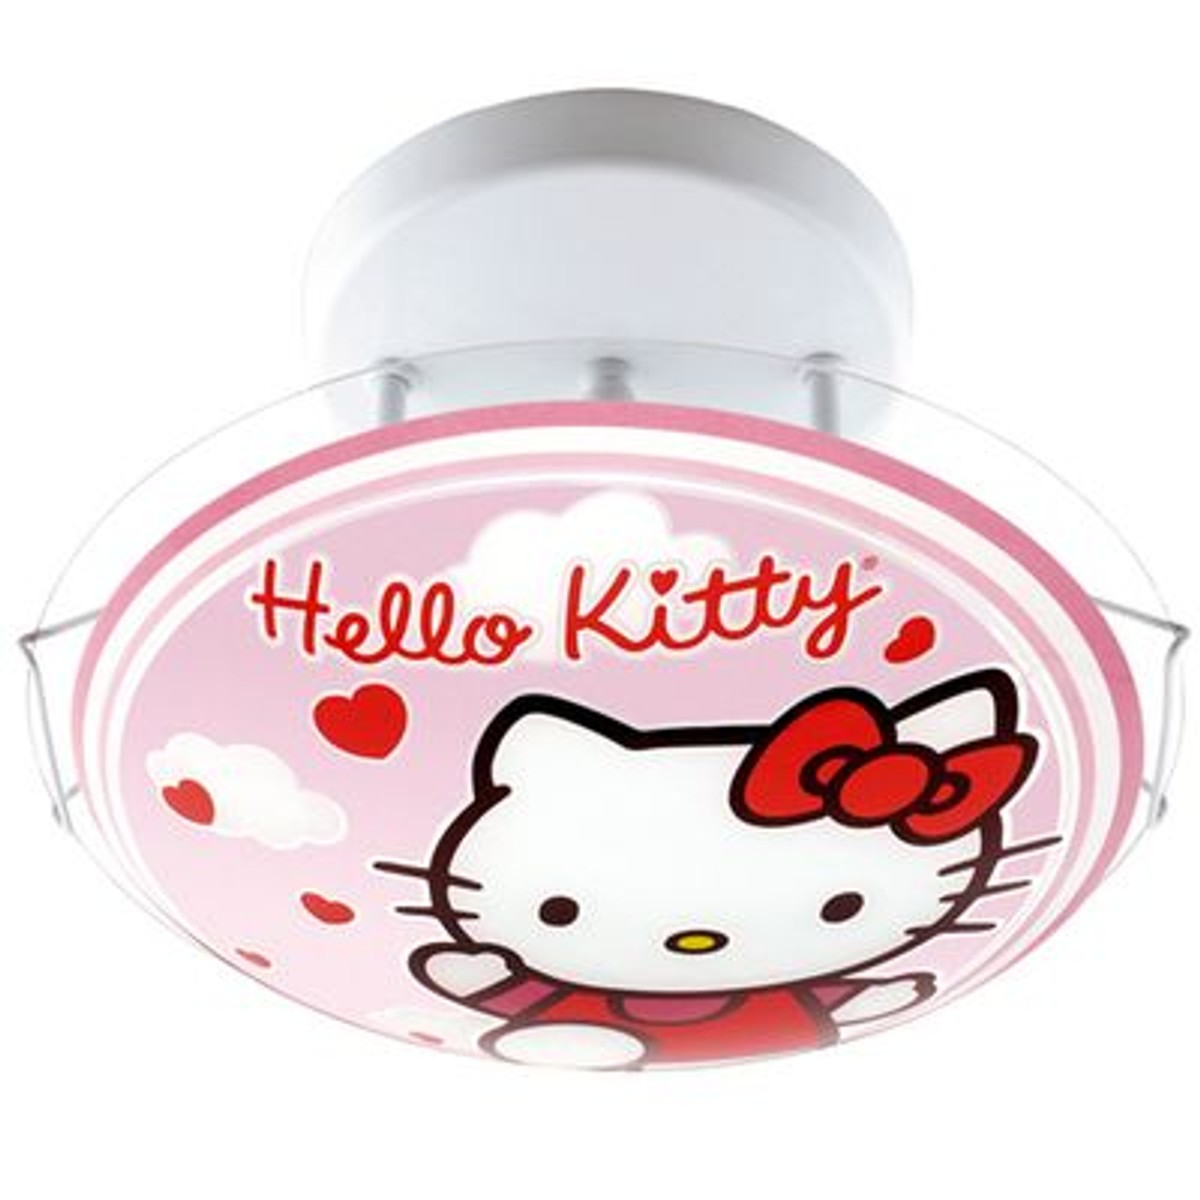 Luminaire En Verre Hello Kitty Taille Taille Unique Chat Hello Kitty Cuisine Hello Kitty Luminaire